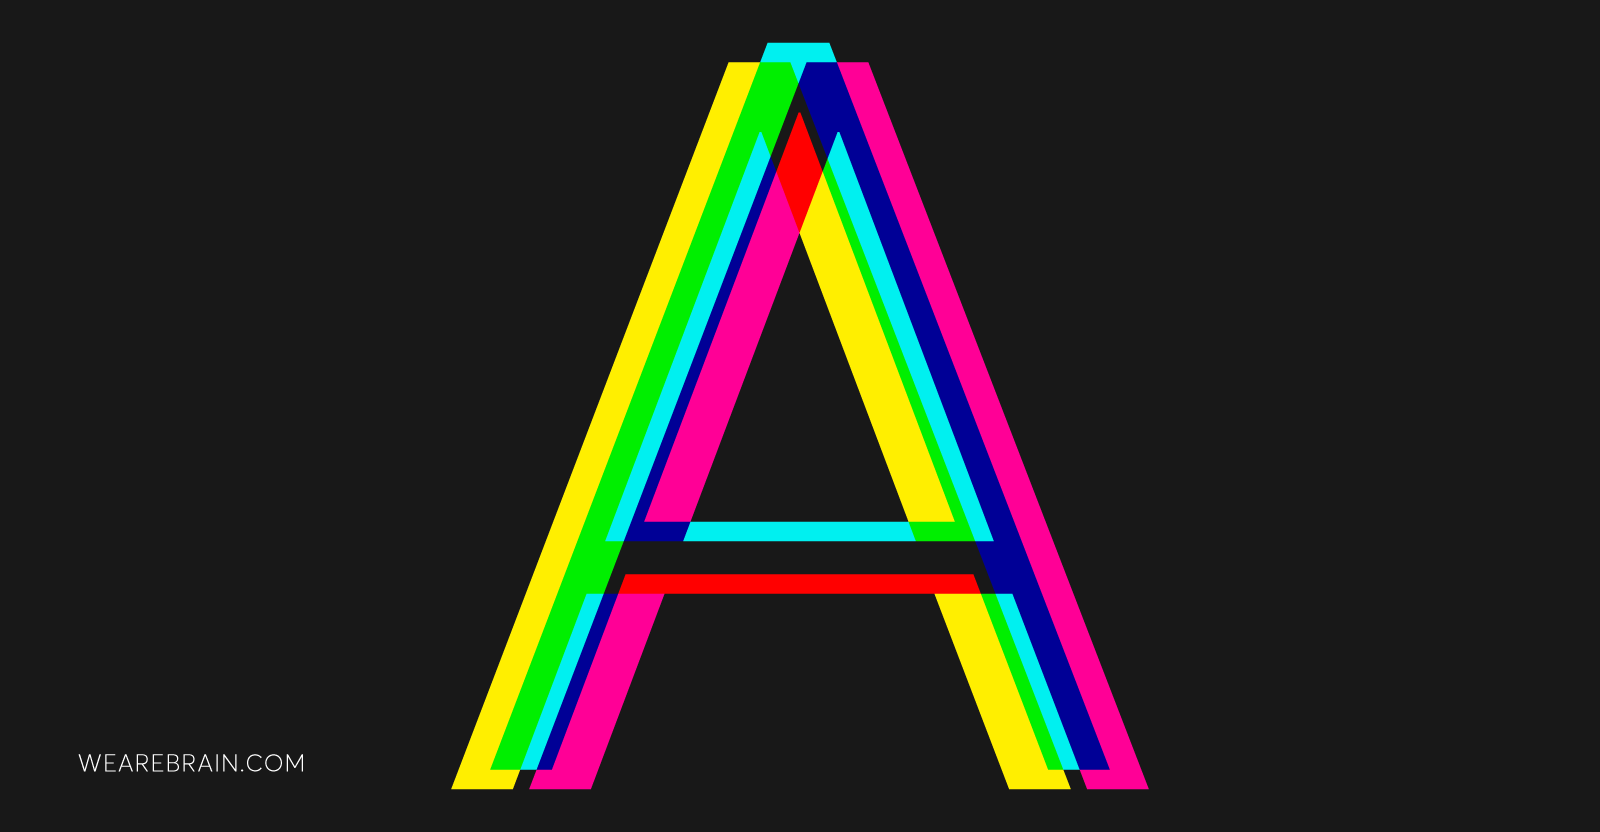 illustration of the letter A